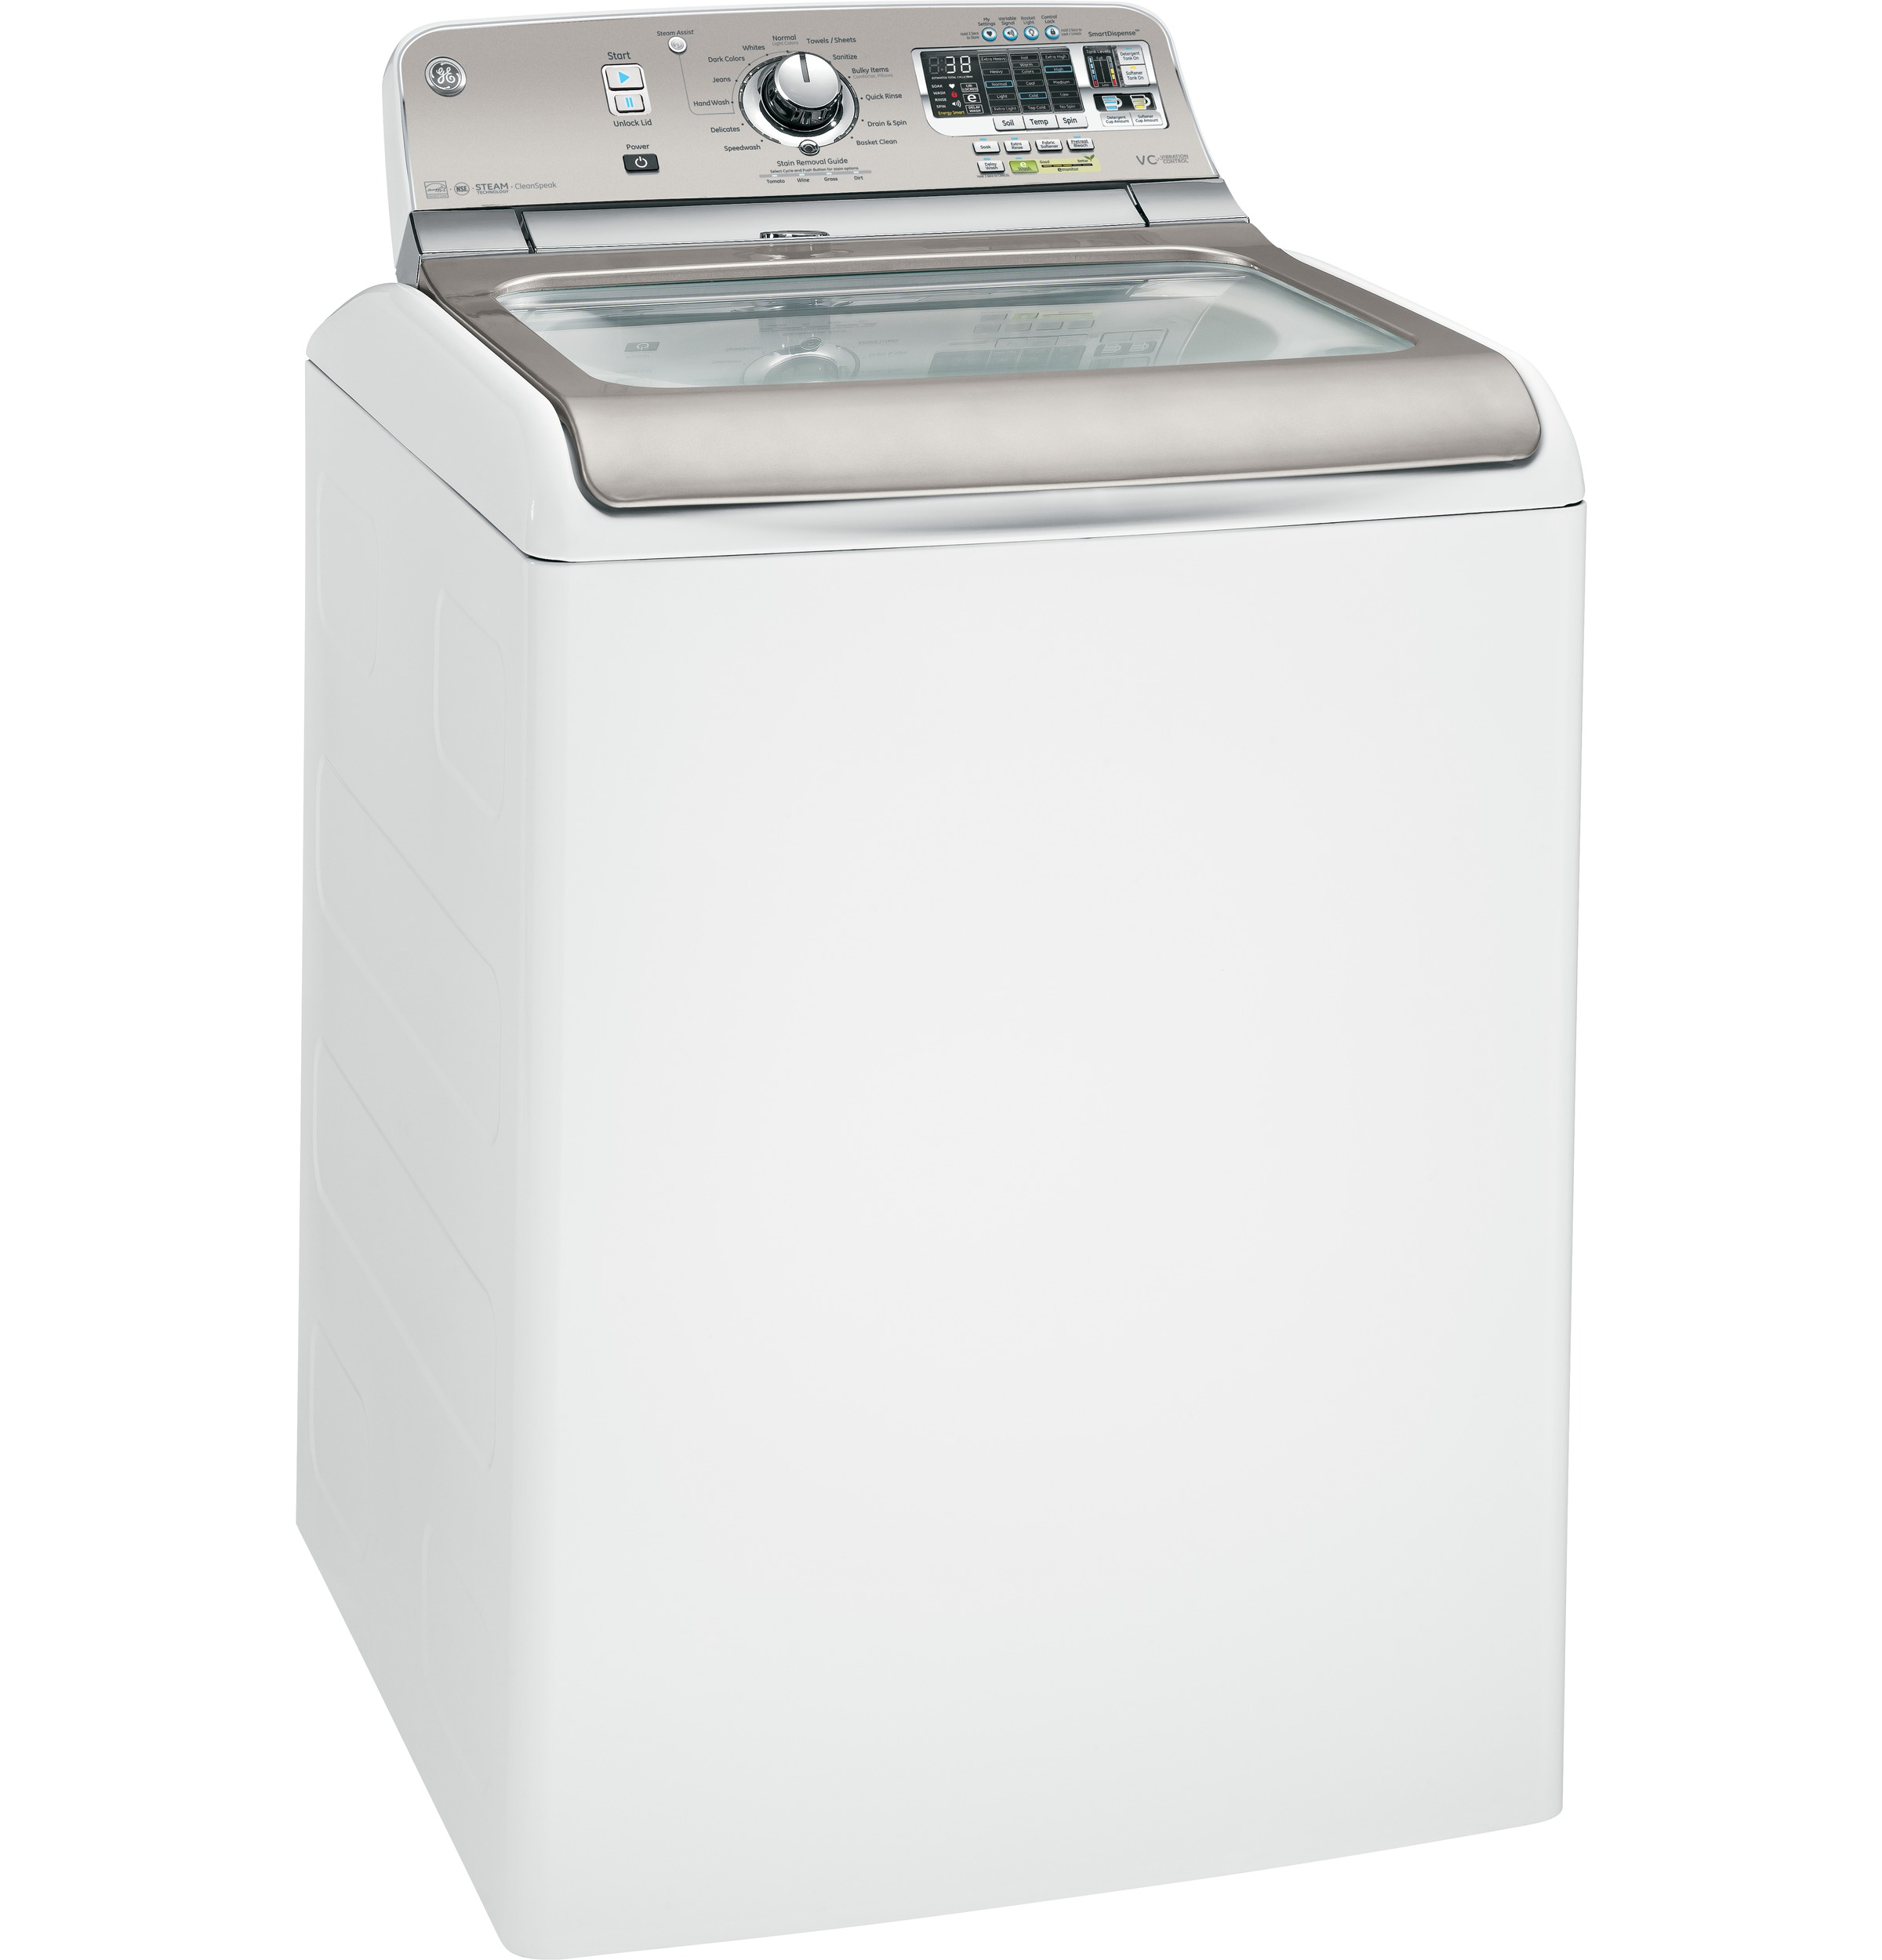 ge® 5 0 doe cu ft capacity washer stainless steel basket product image product image product image product image